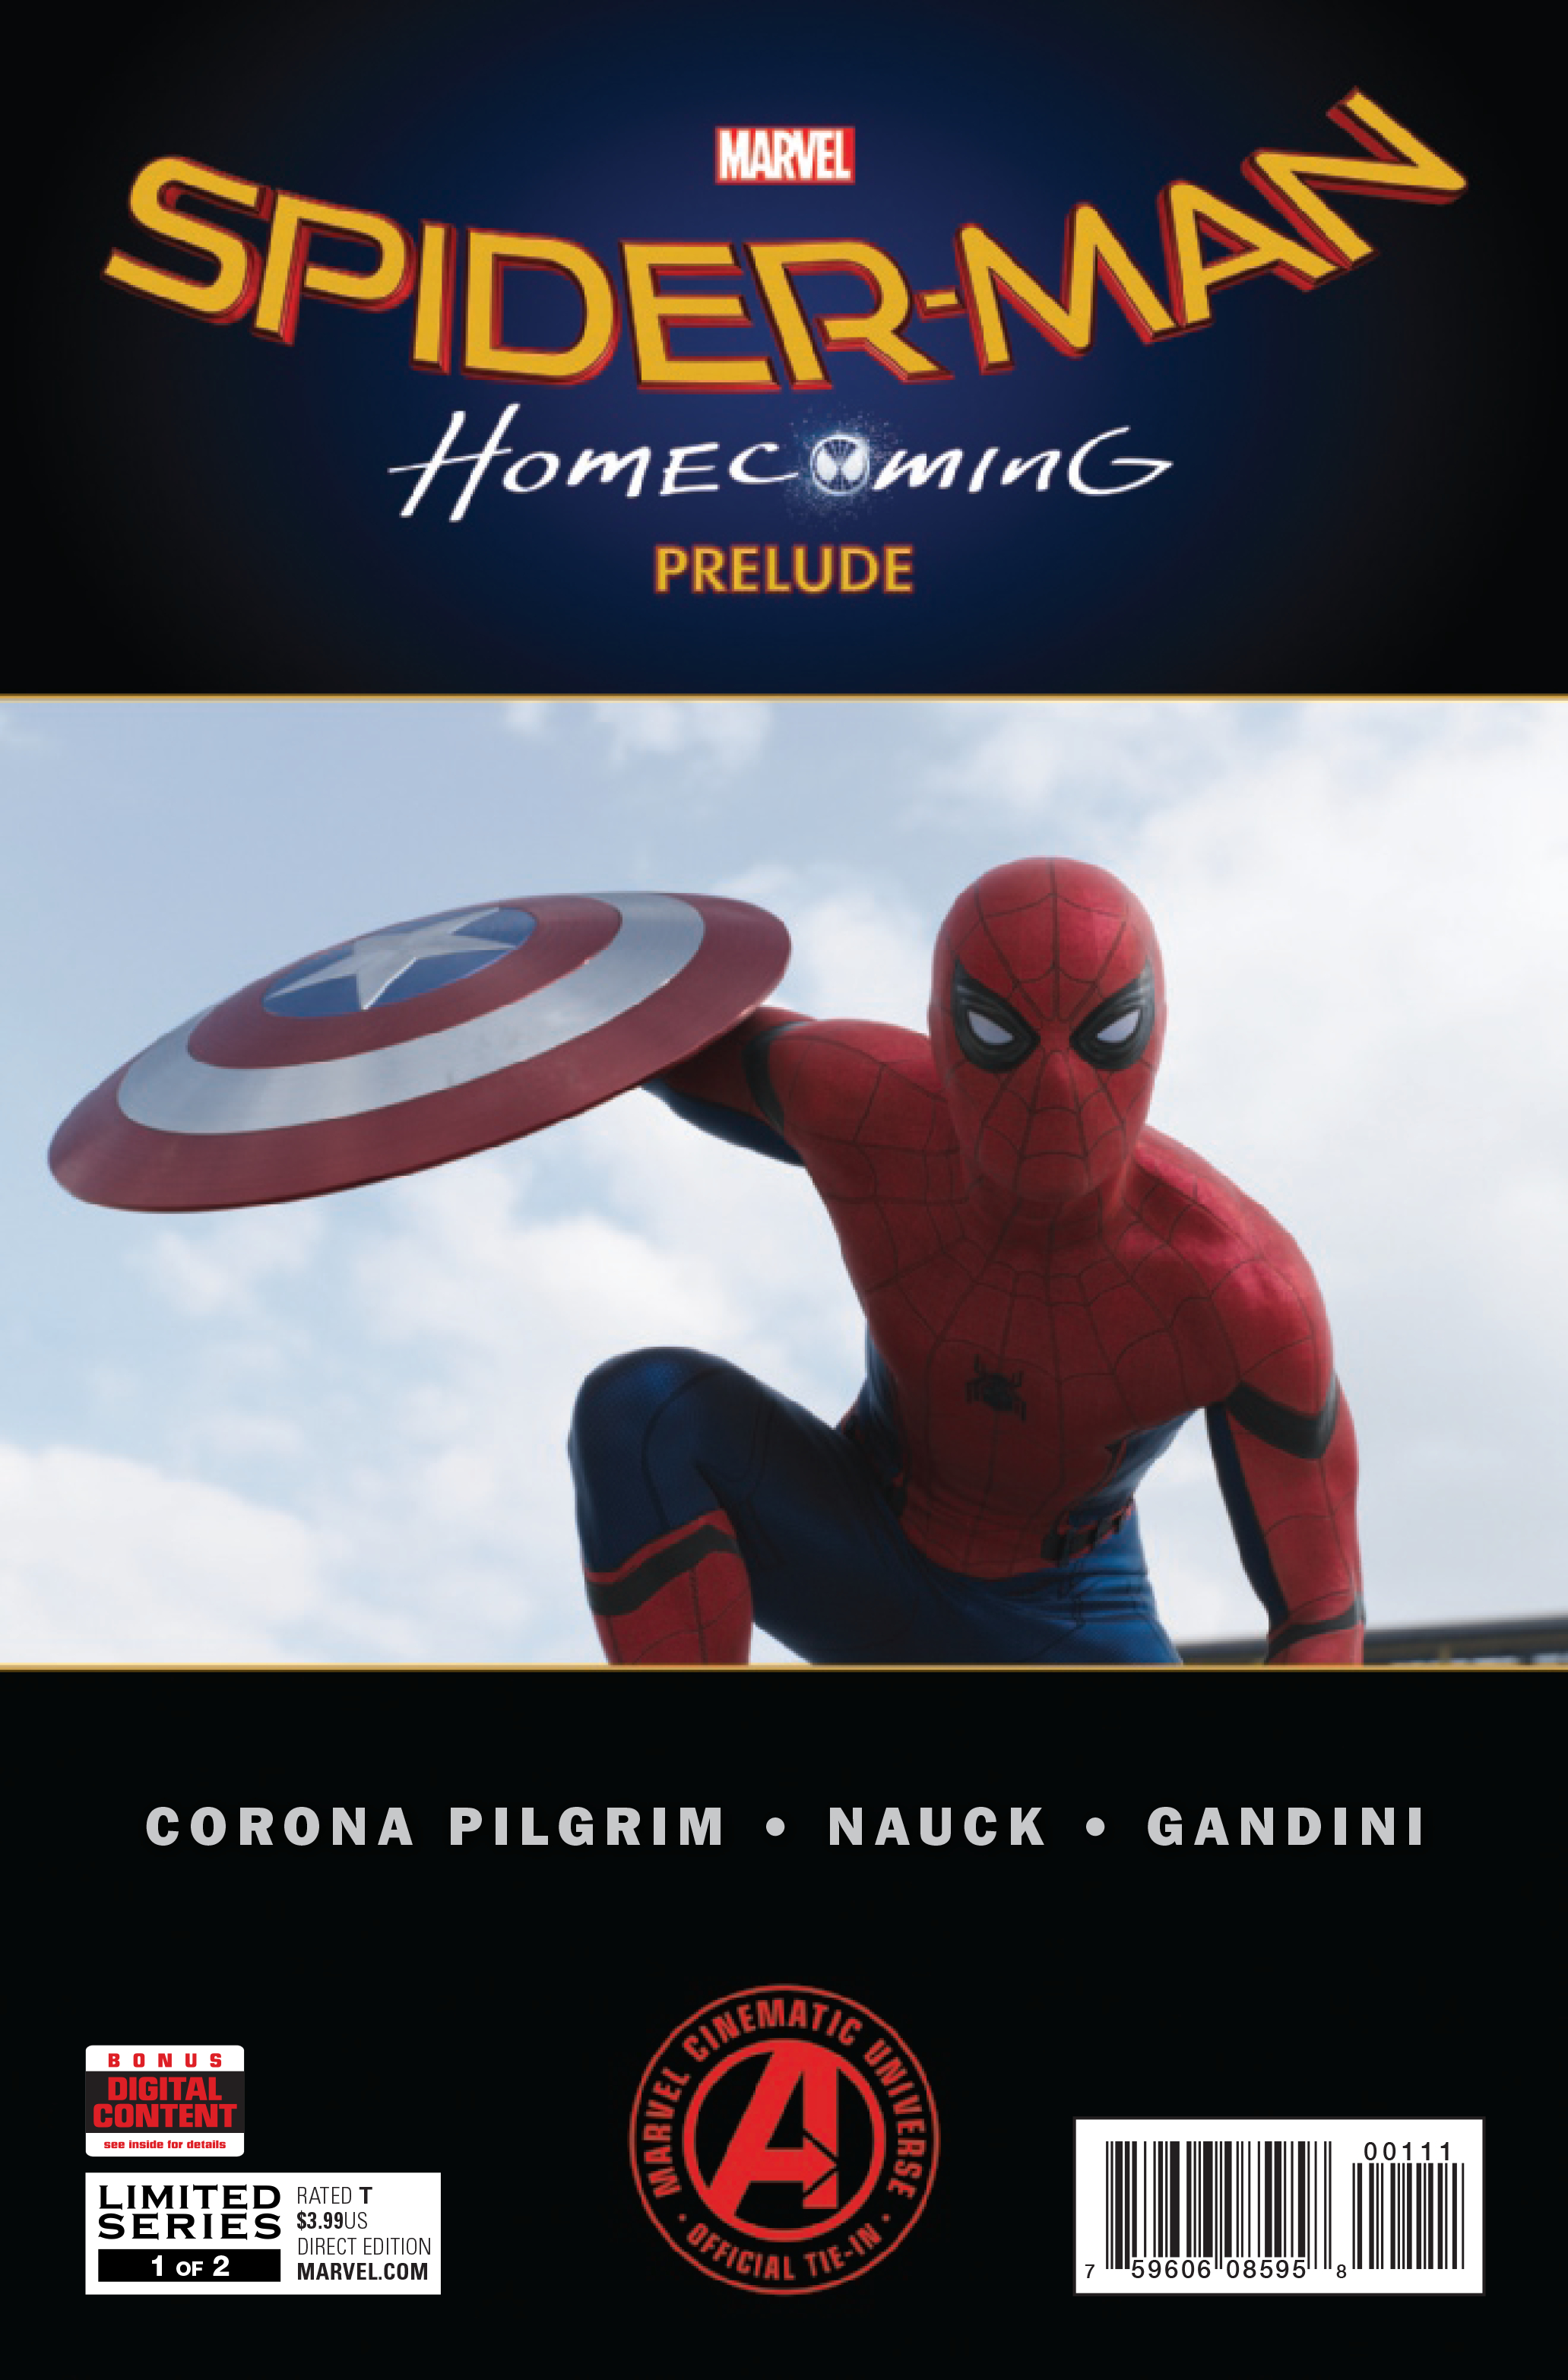 SPIDER-MAN HOMECOMING PRELUDE #1 (OF 2)